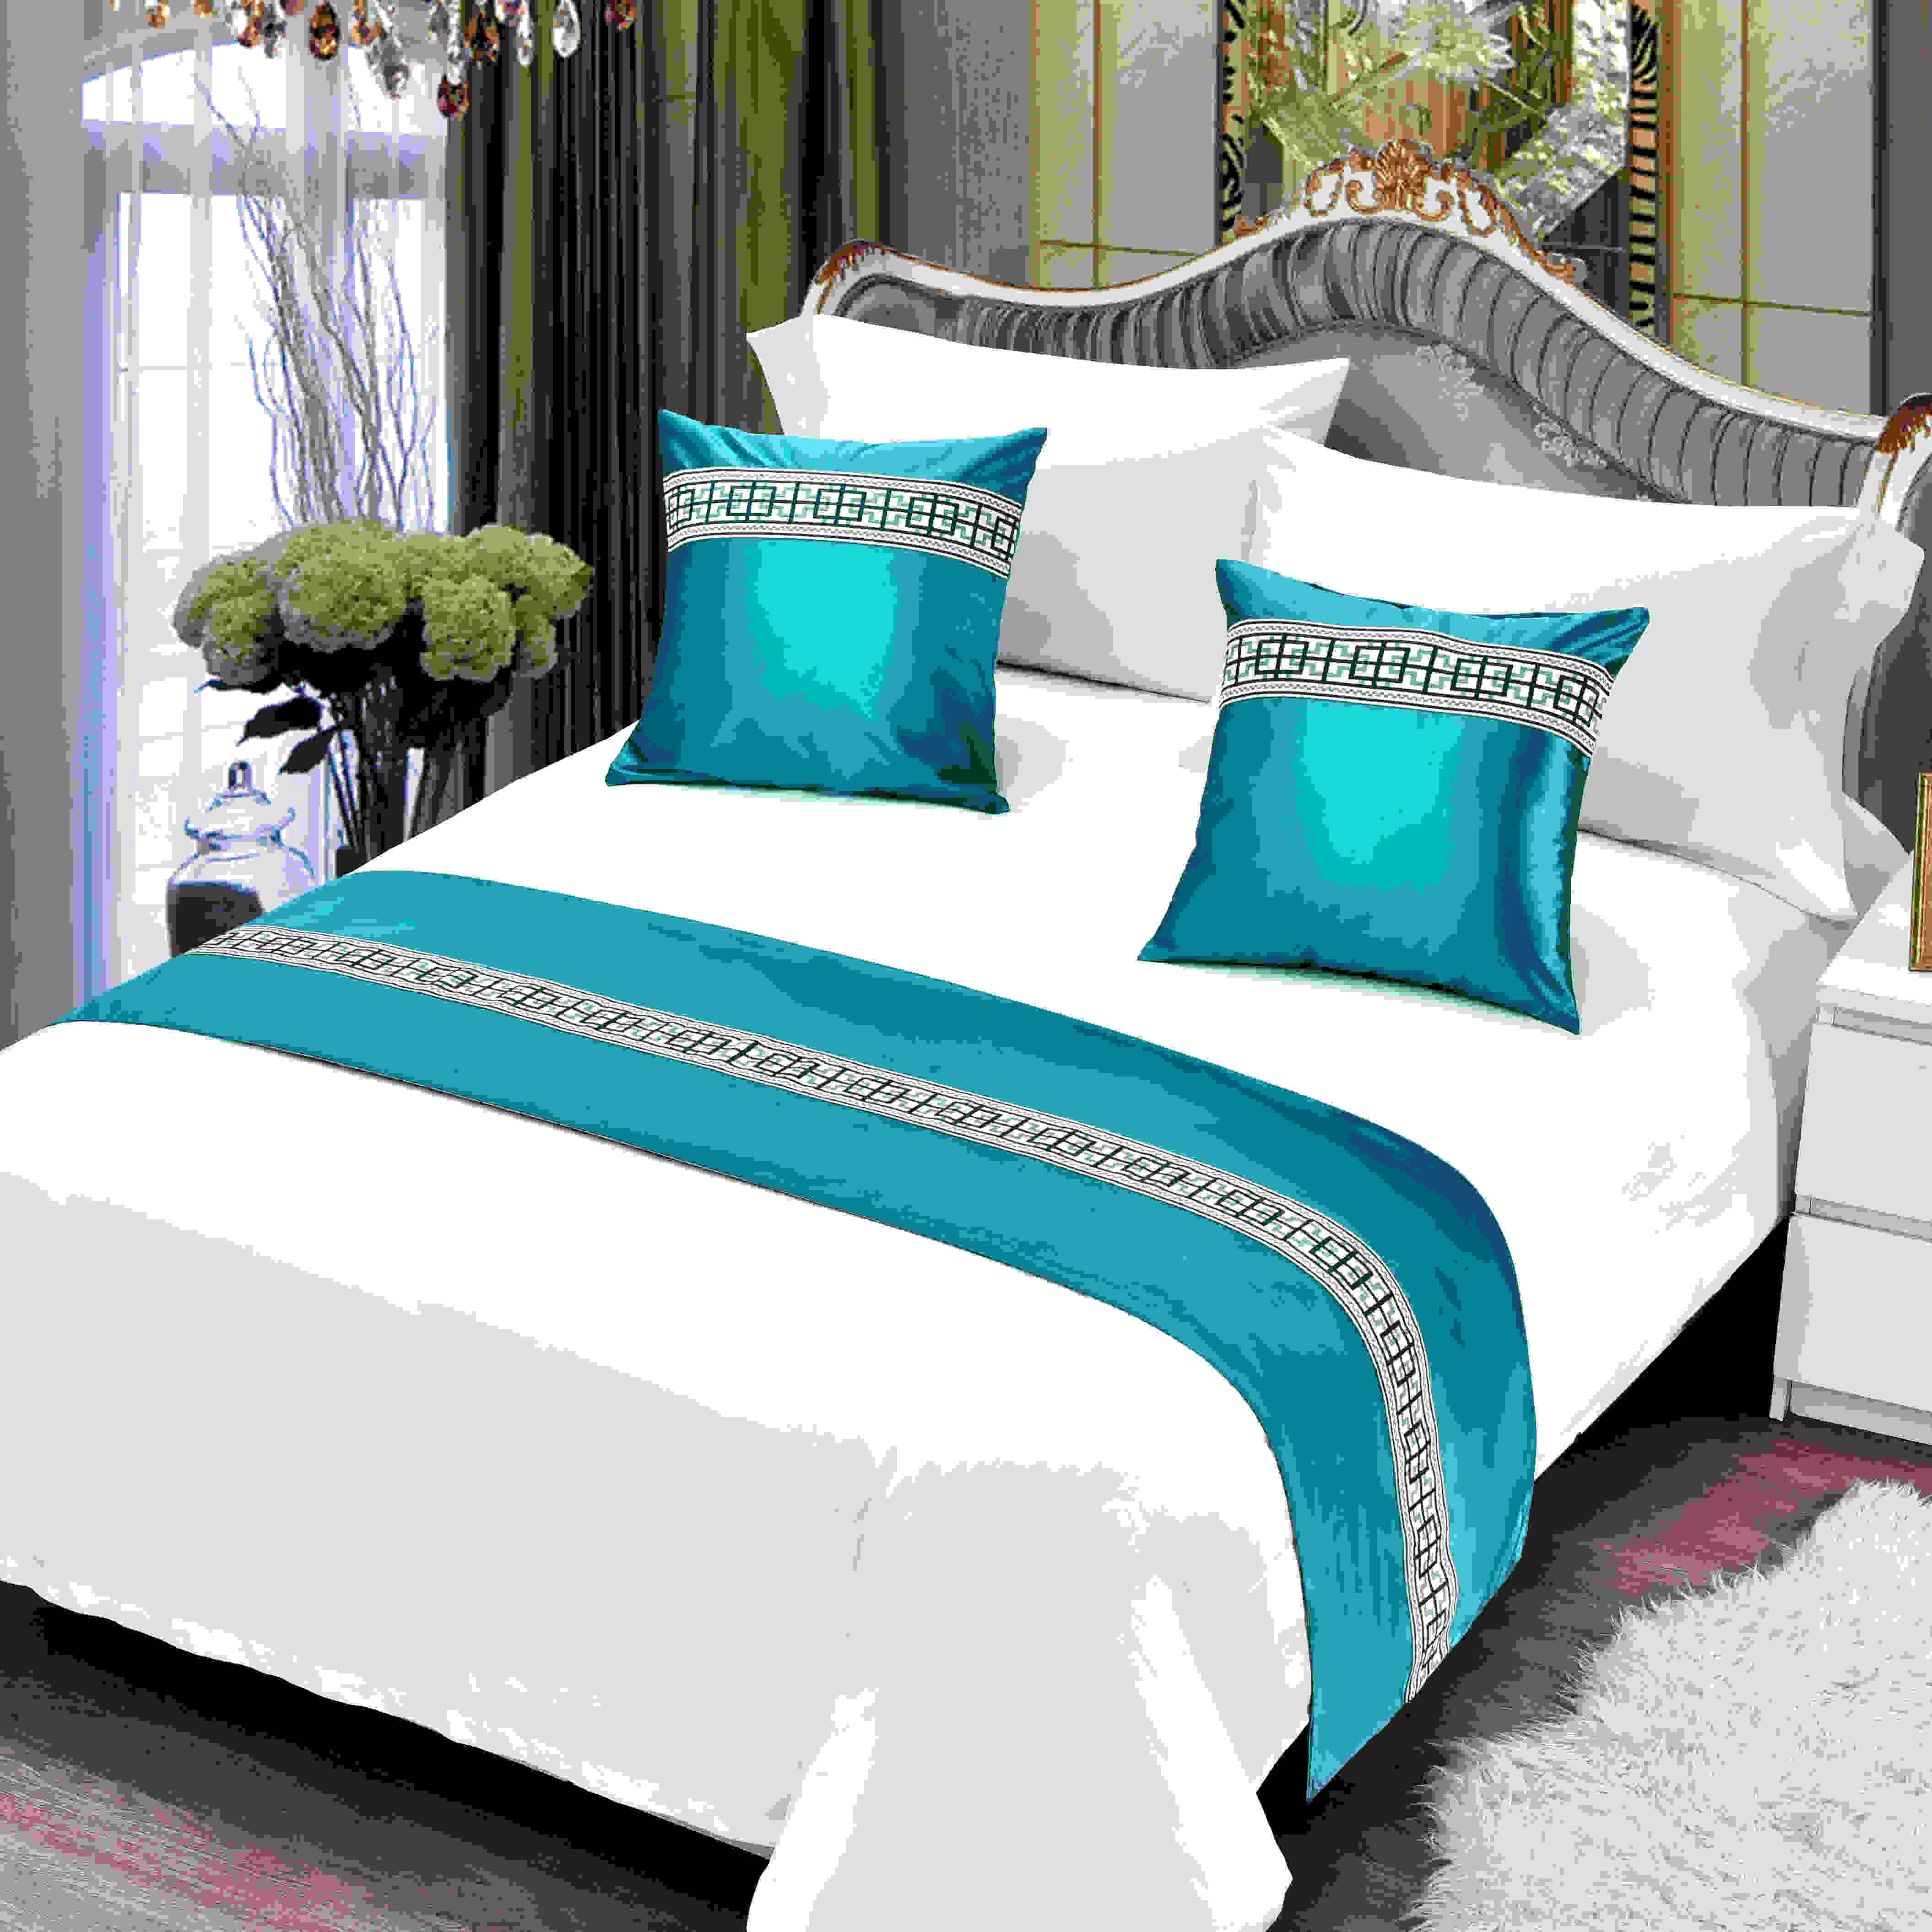 Five Star Hotel Bedding European Style Simple Modern Bed Runner Bedspread Bed Runner Factory Direct Shopee Philippines